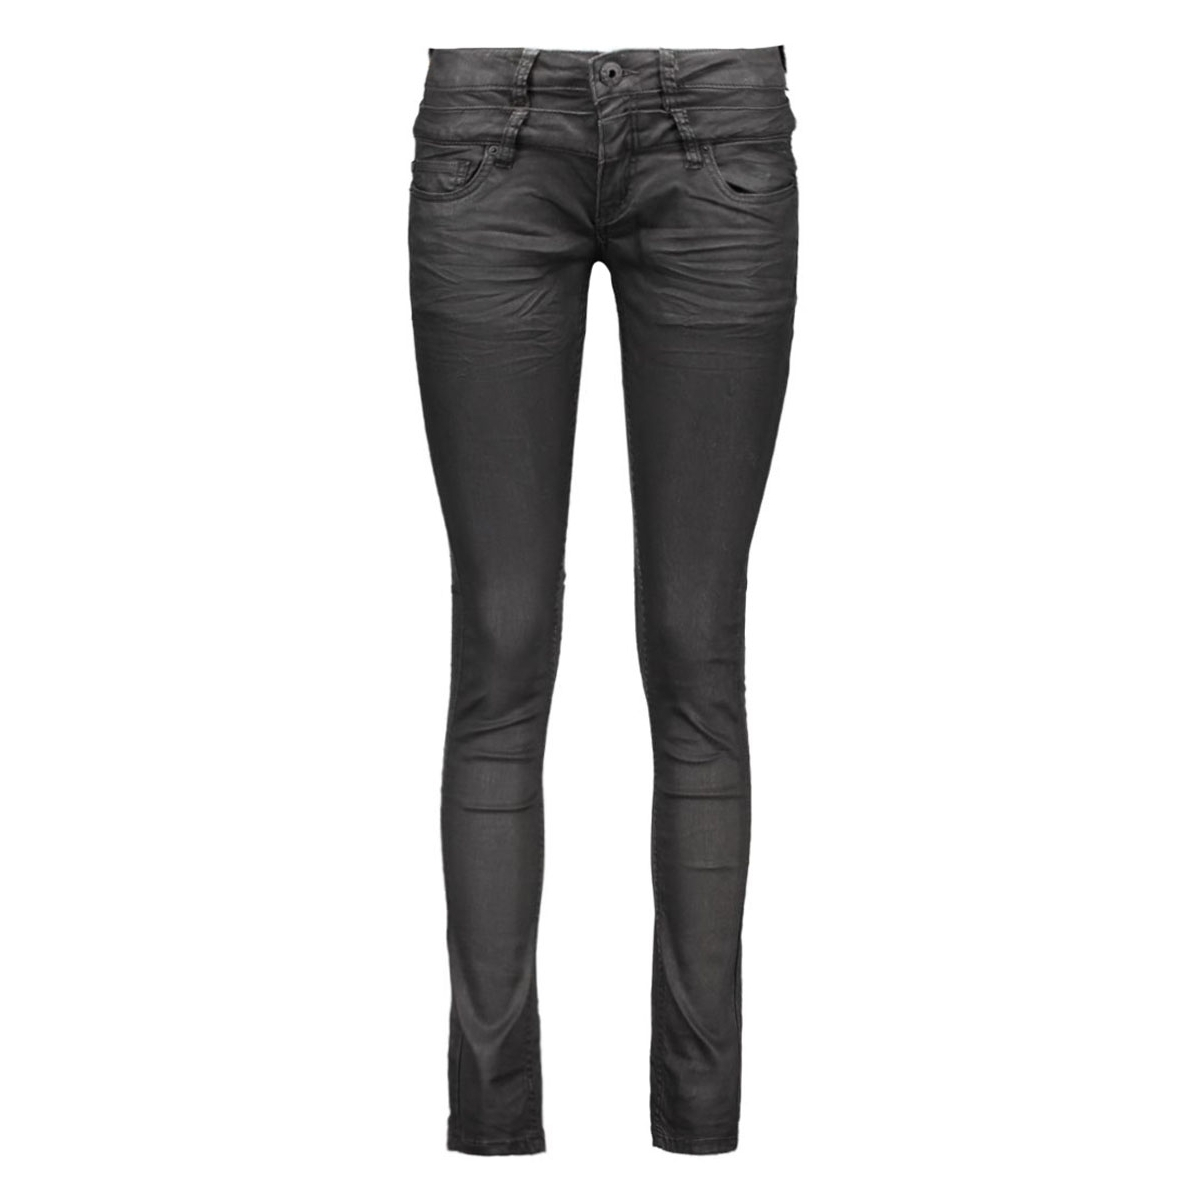 w16.1.3691 circle of trust jeans grey shade